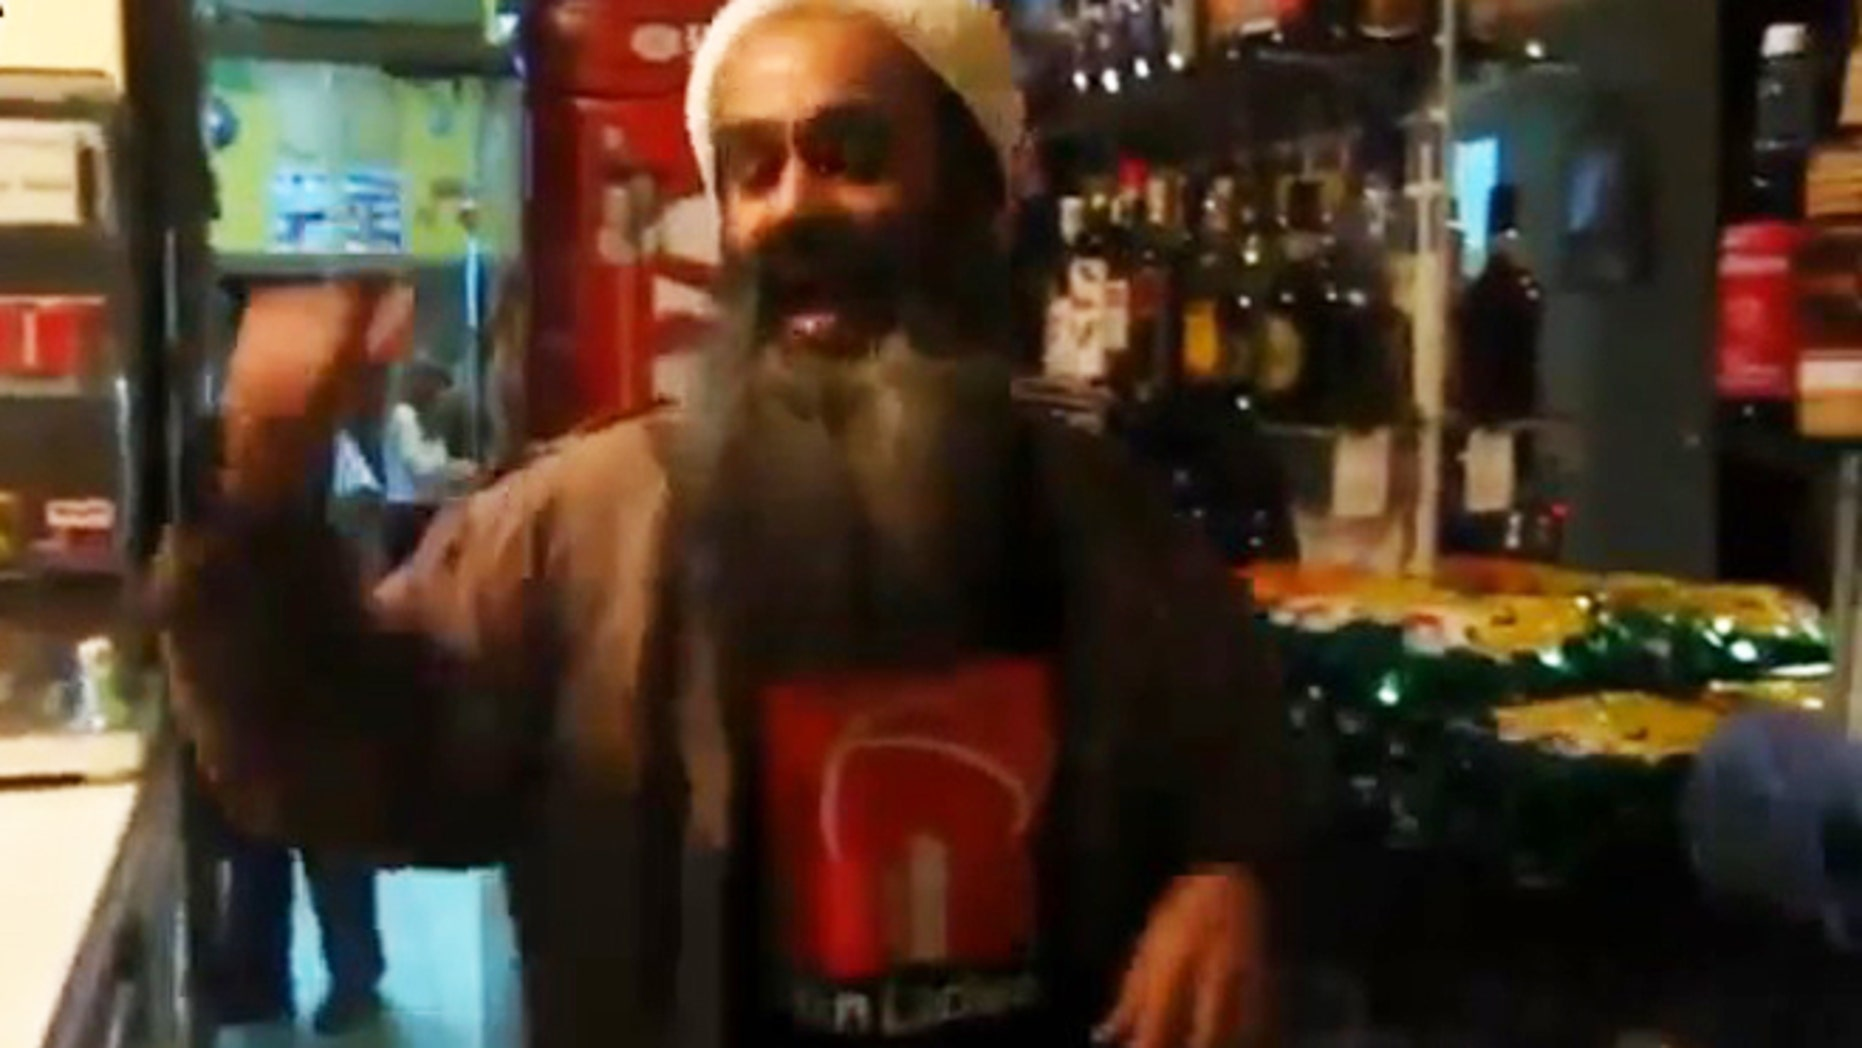 Osama bin Laden bar in Brazil is exactly what you think it would be.